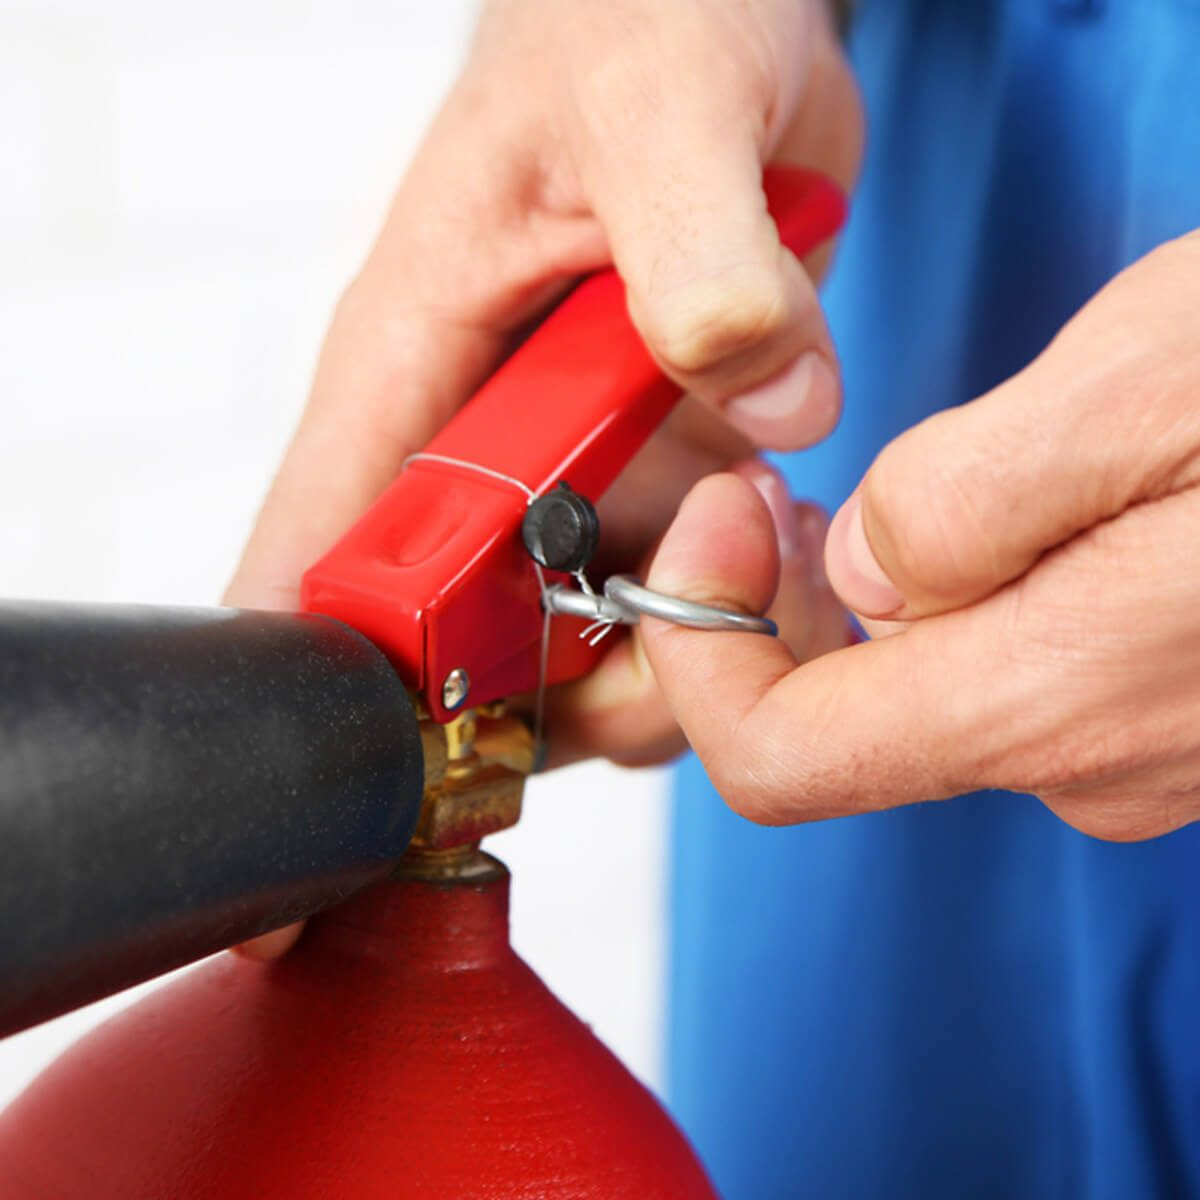 Know How to Use Fire Extinguishers